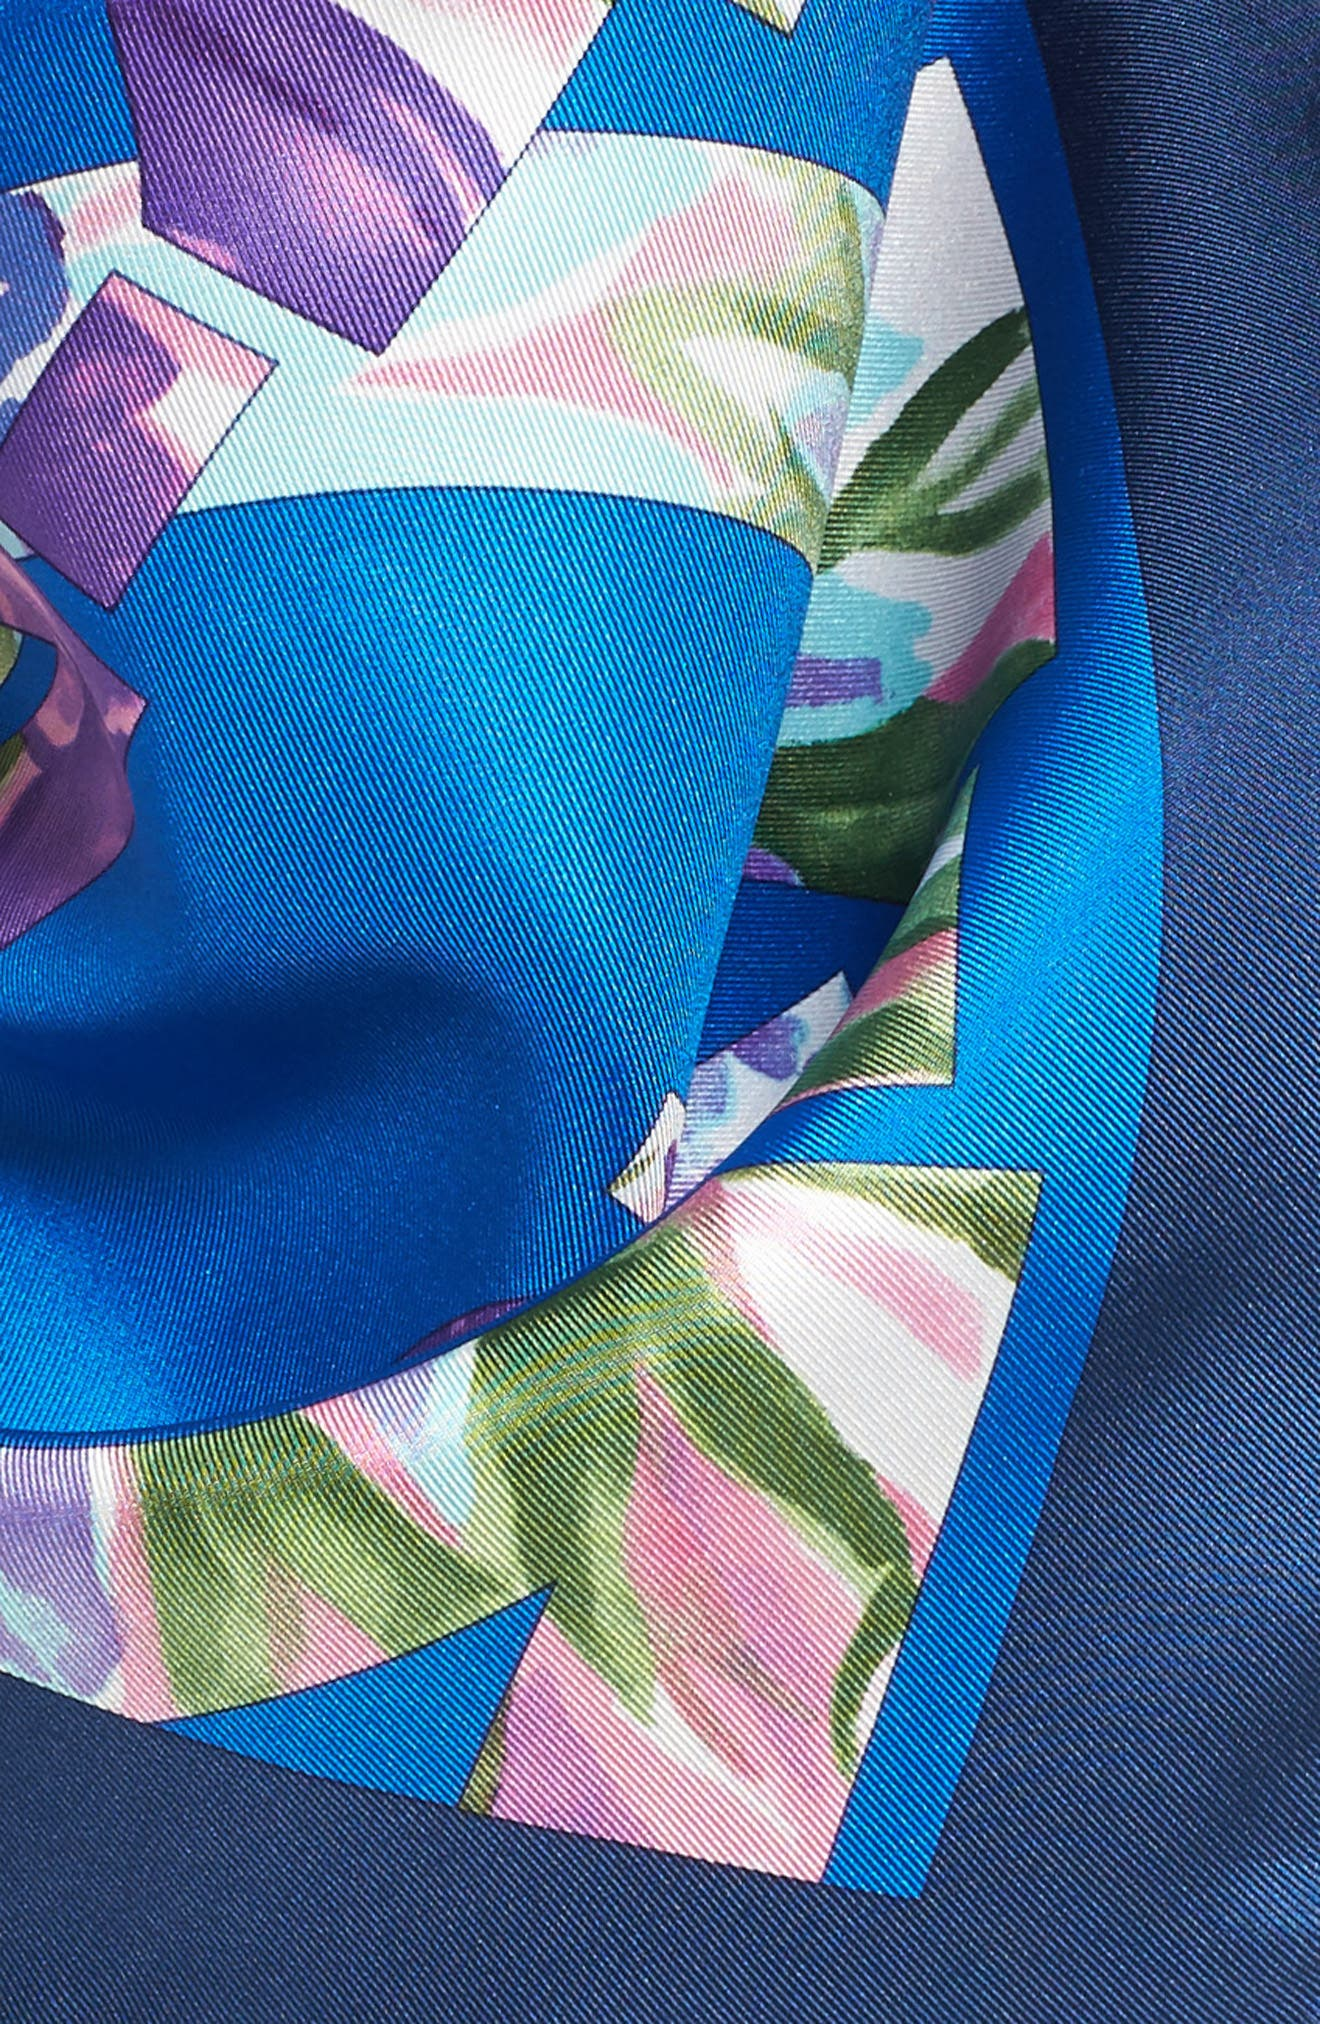 Alternate Image 3  - Salvatore Ferragamo Silk Scarf